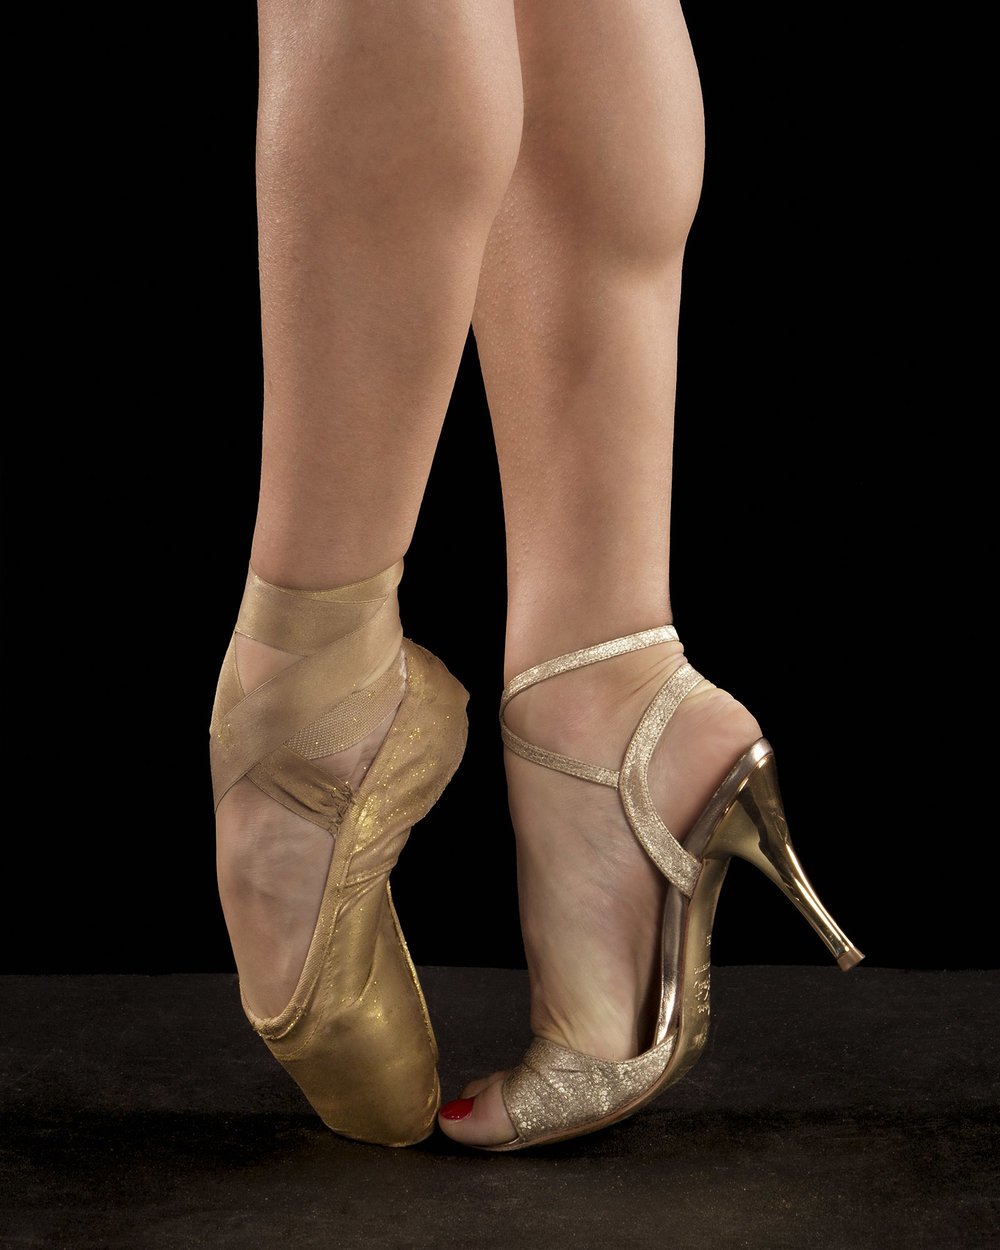 We started off with photographing Erin in her pointe & tango shoes.